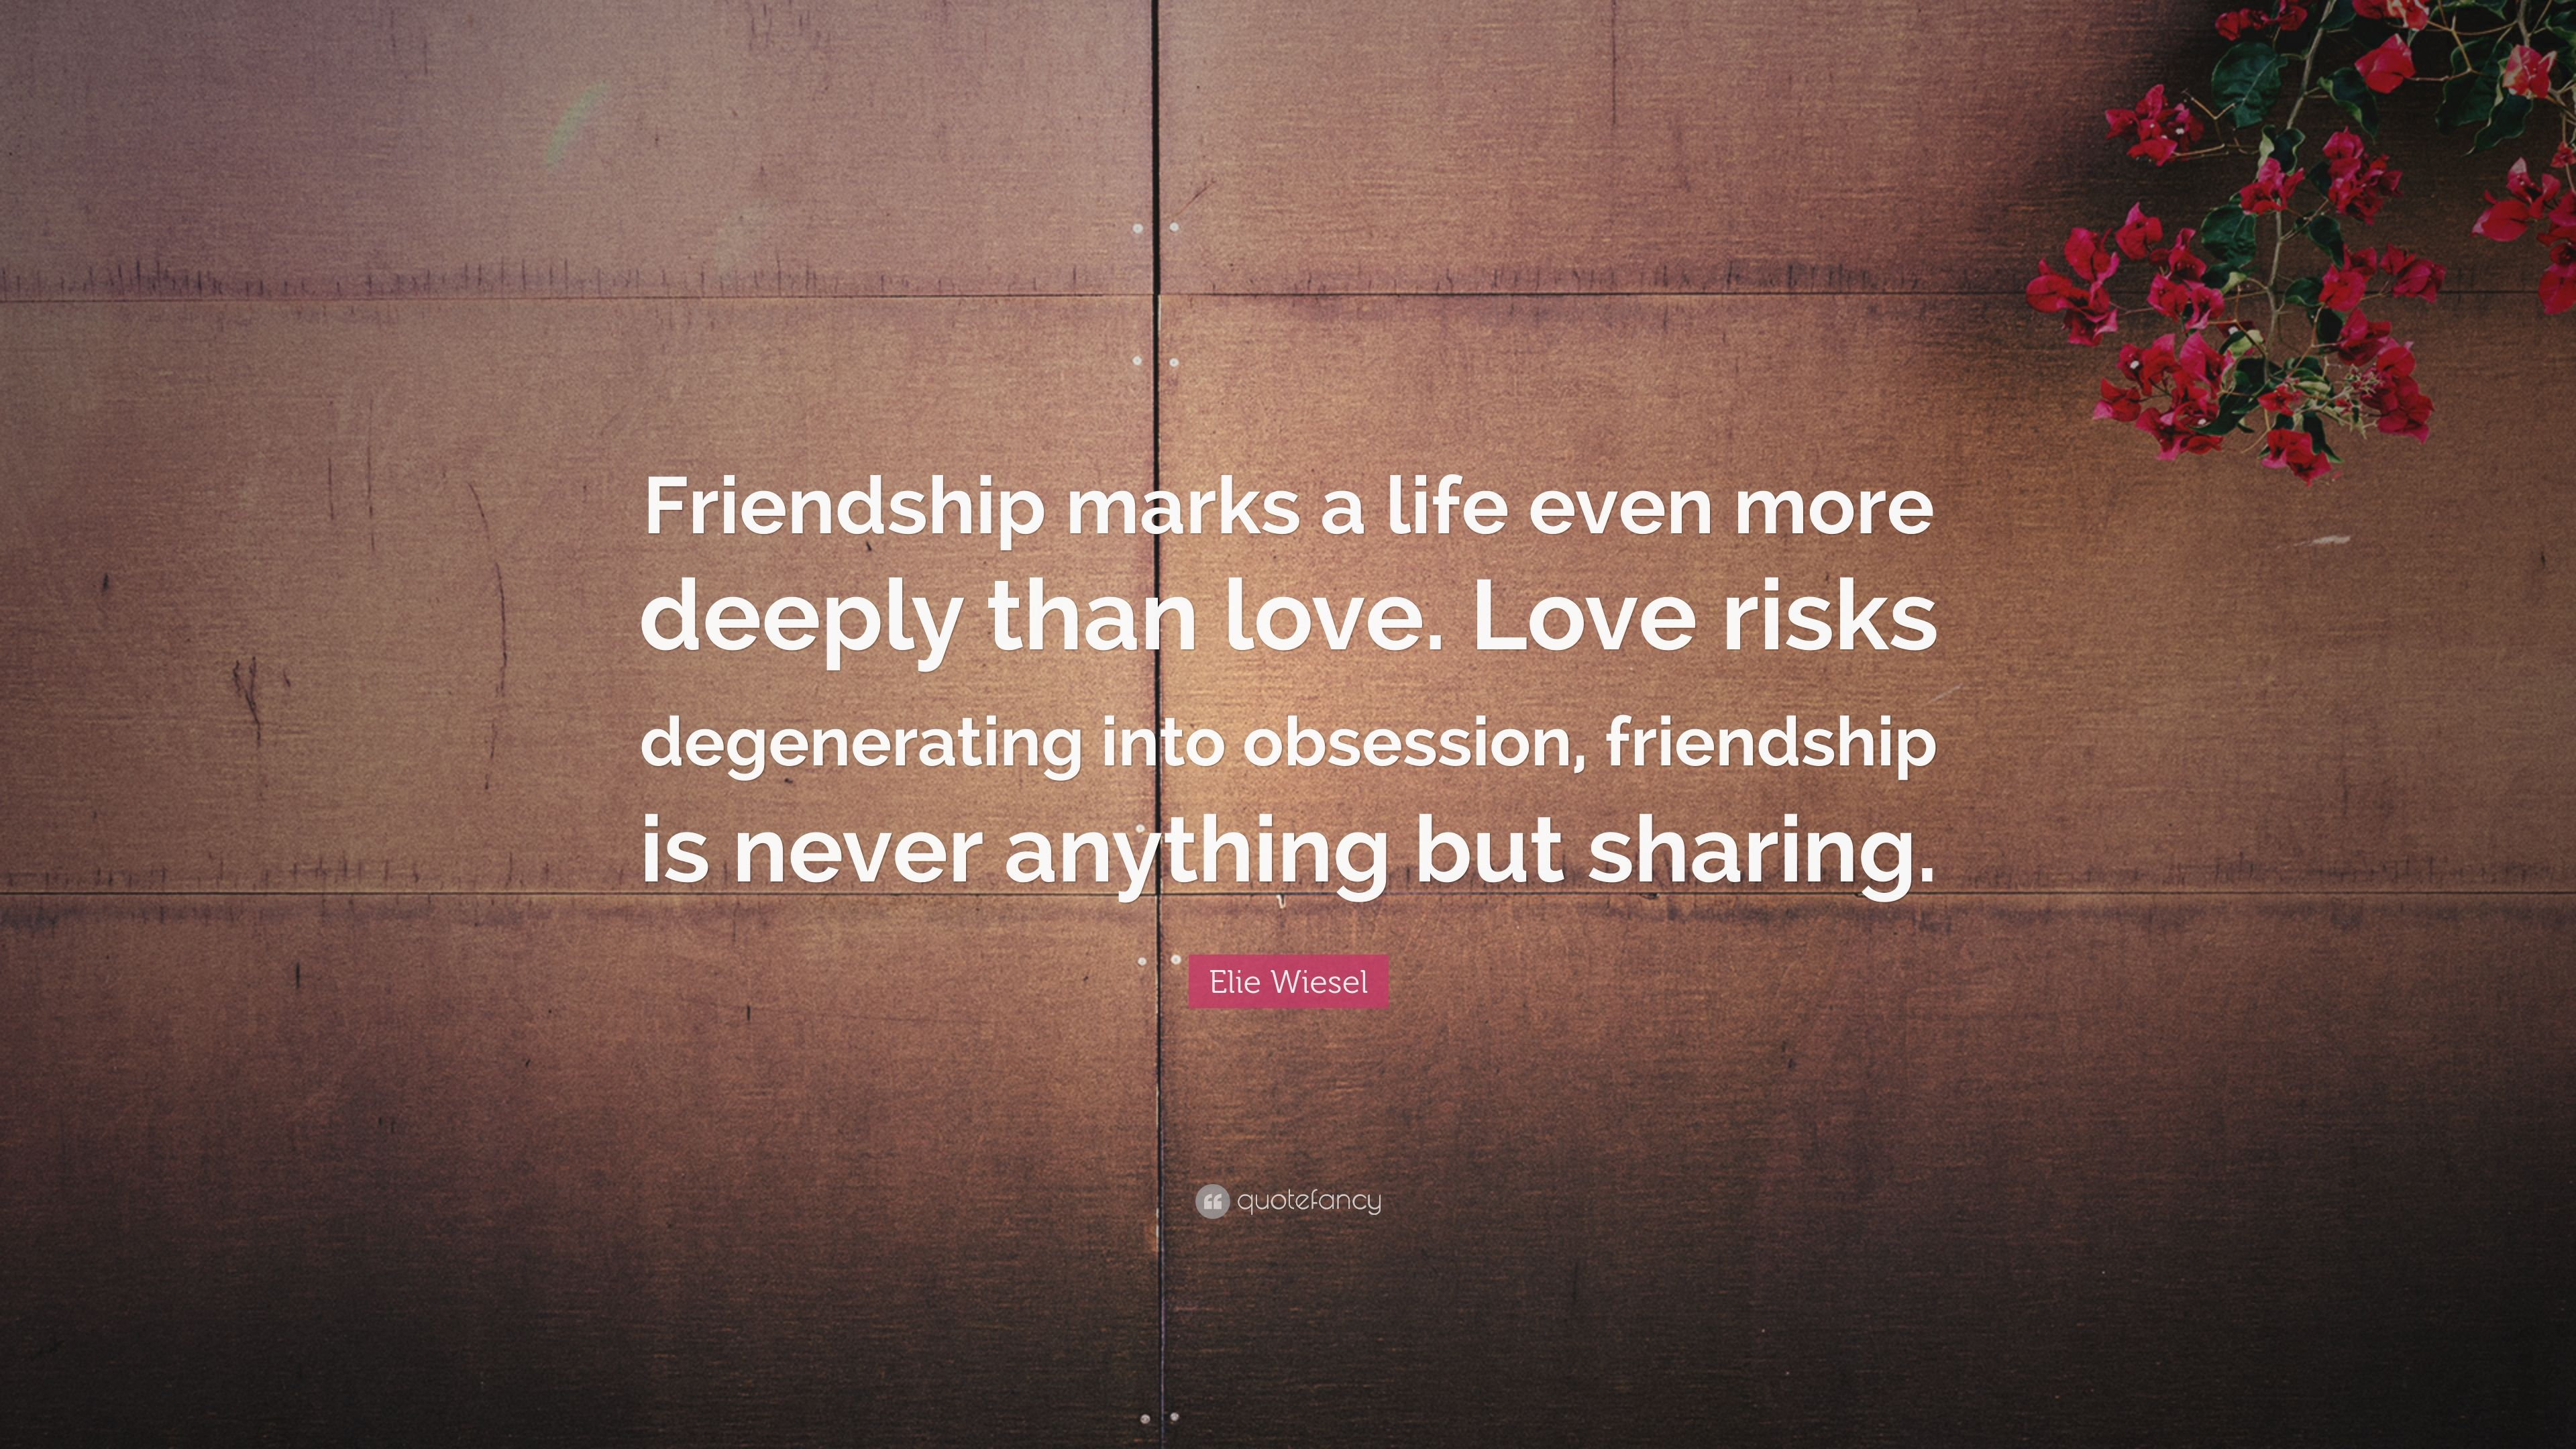 Elie wiesel quote friendship marks a life even more deeply than elie wiesel quote friendship marks a life even more deeply than love love thecheapjerseys Image collections